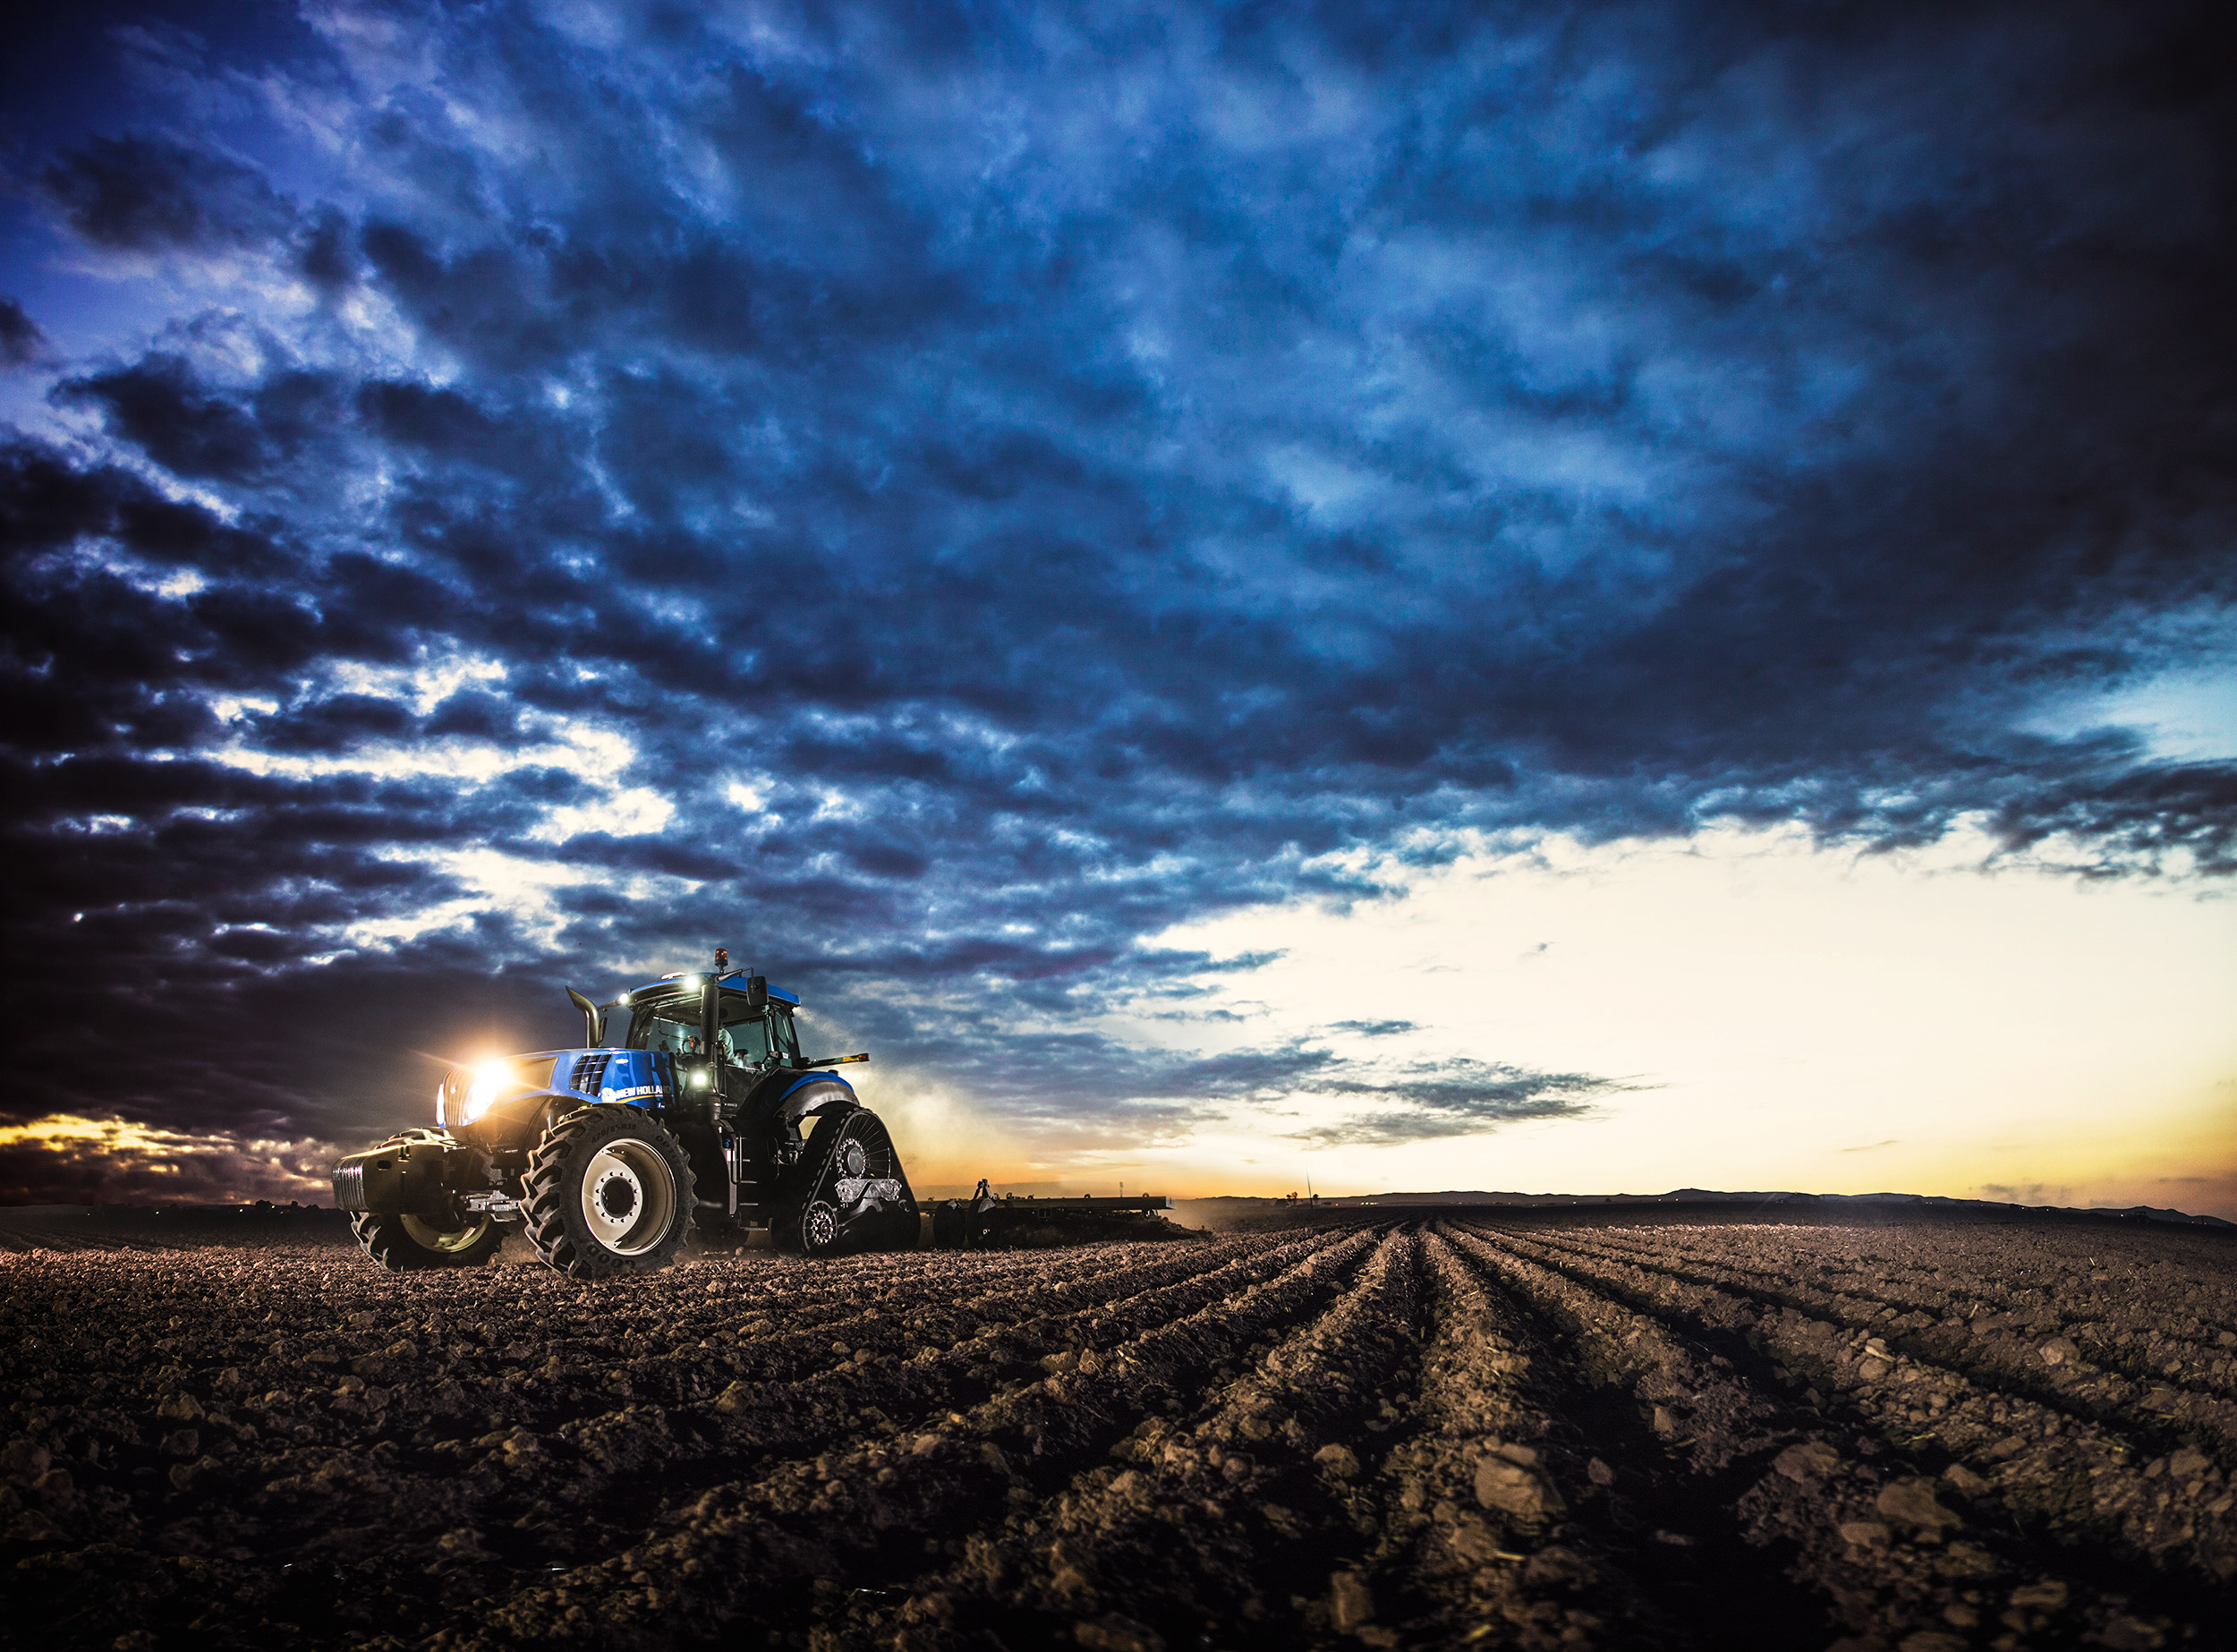 Tractor_1_Pano